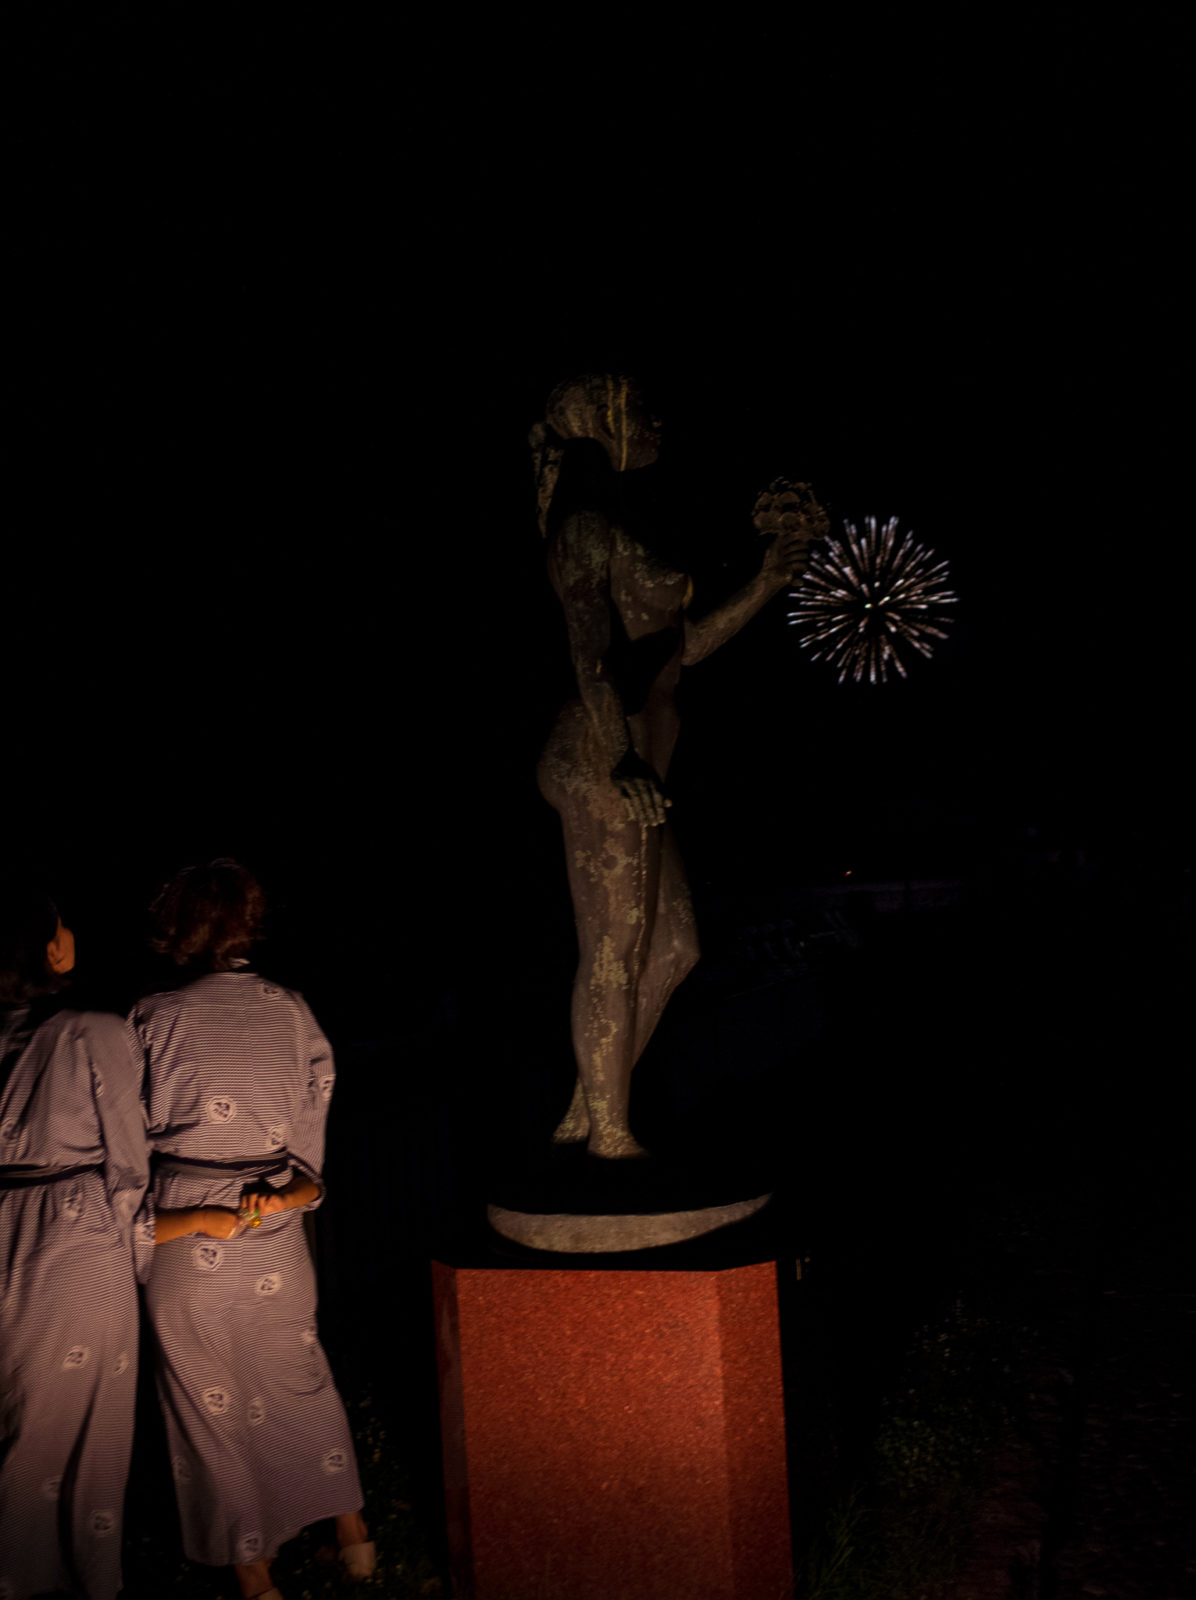 Wenkai Wang Look At Firework From The Other Side C41 Submission 52